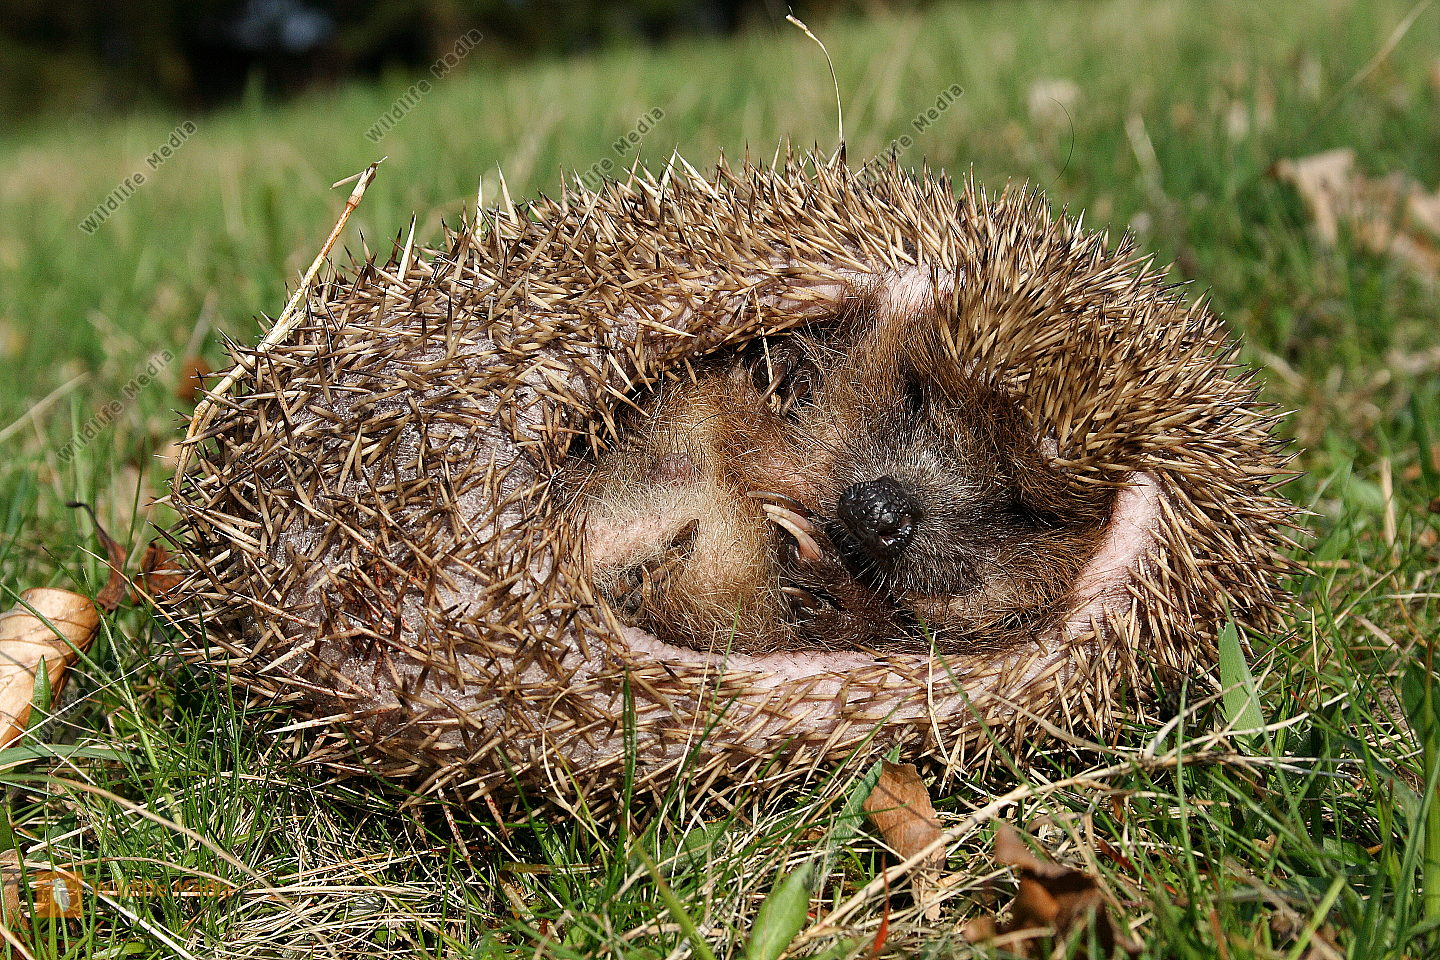 Pin Igel On Pinterest